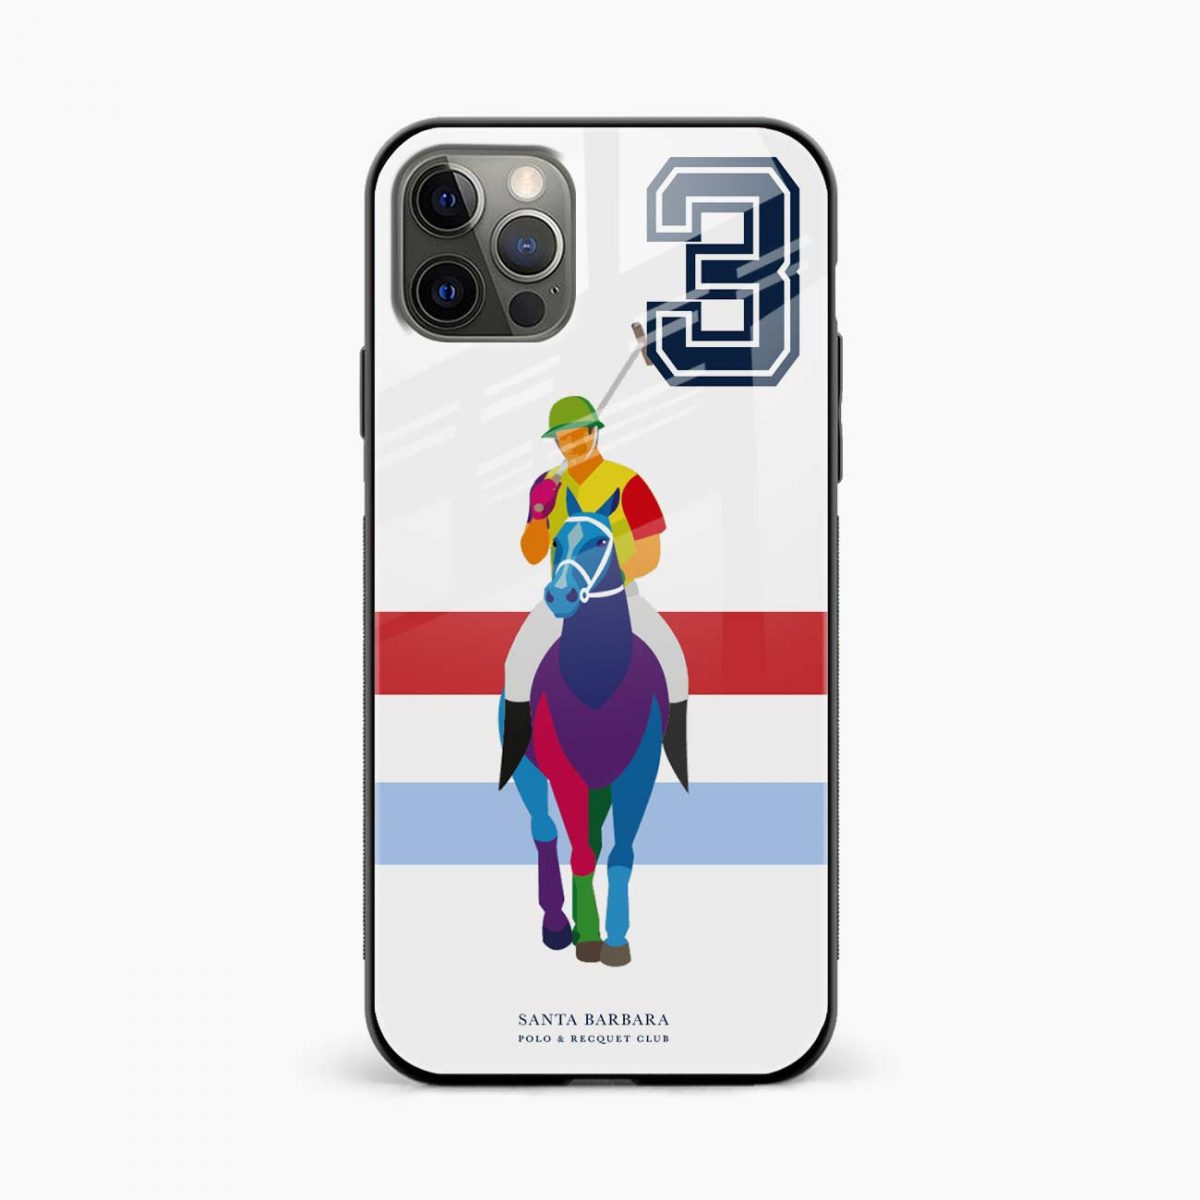 multicolor sant barbara polo iphone pro back cover front view